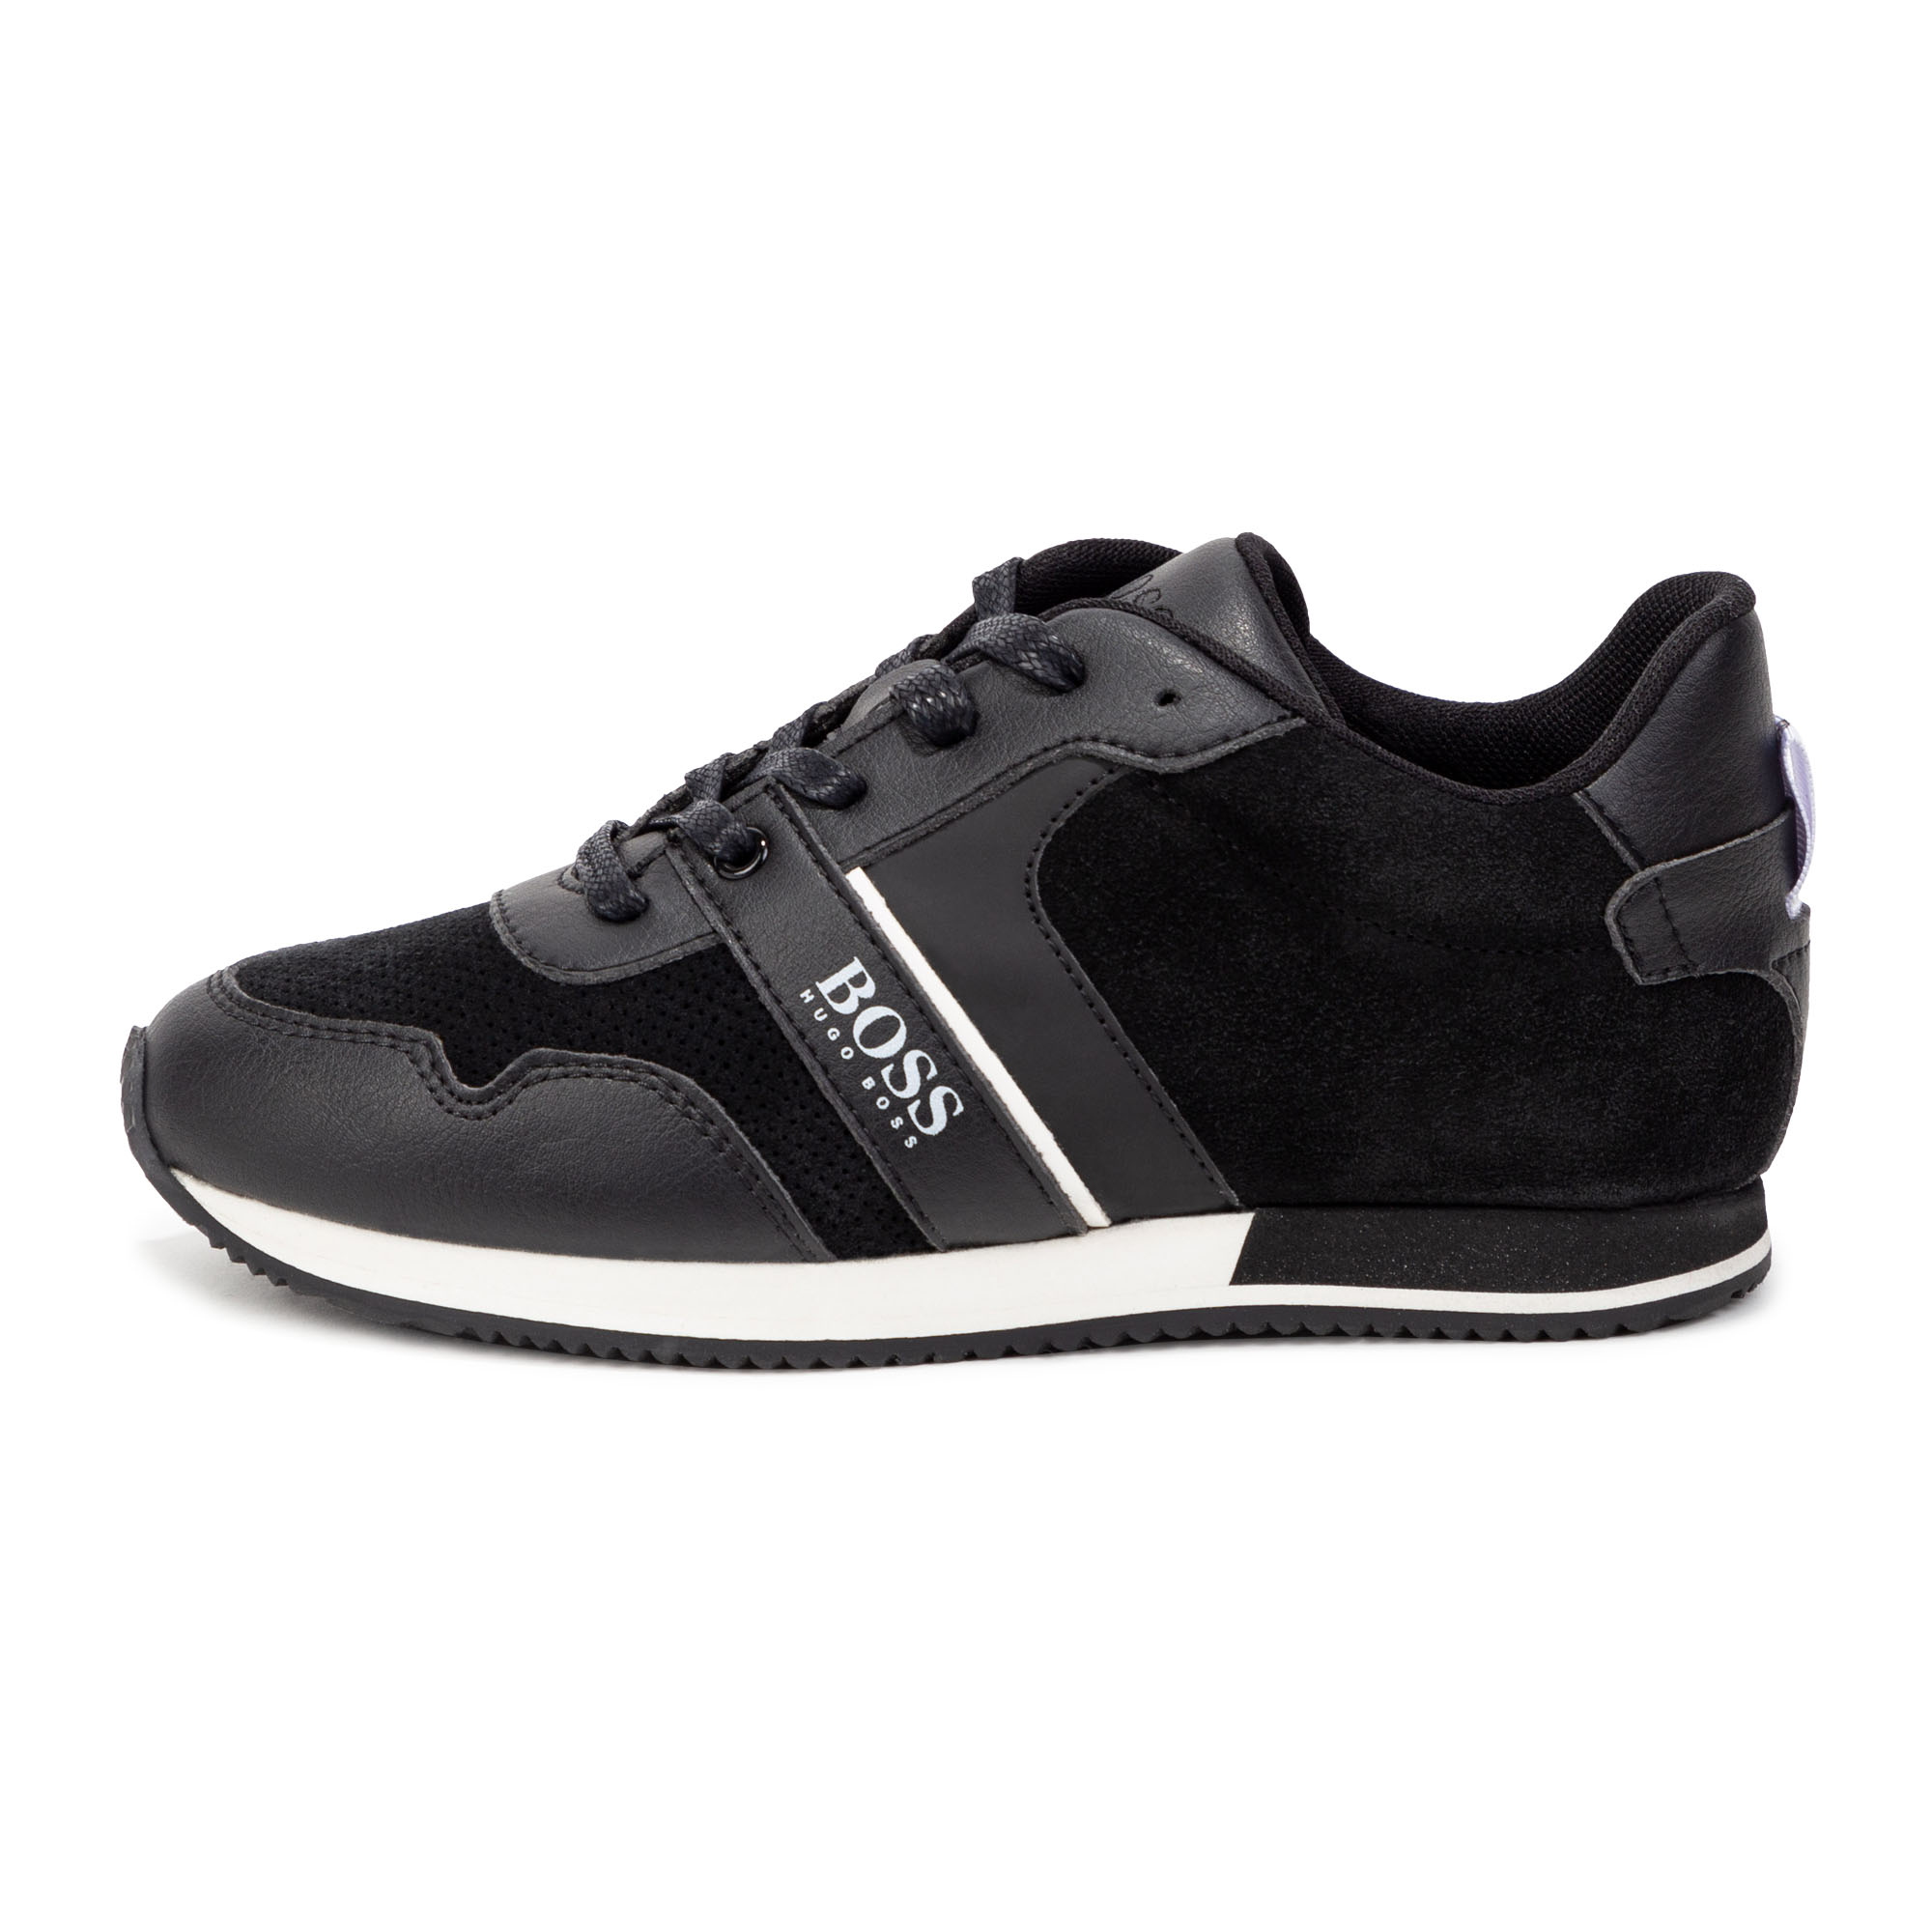 Lace-up leather sneakers. BOSS for BOY